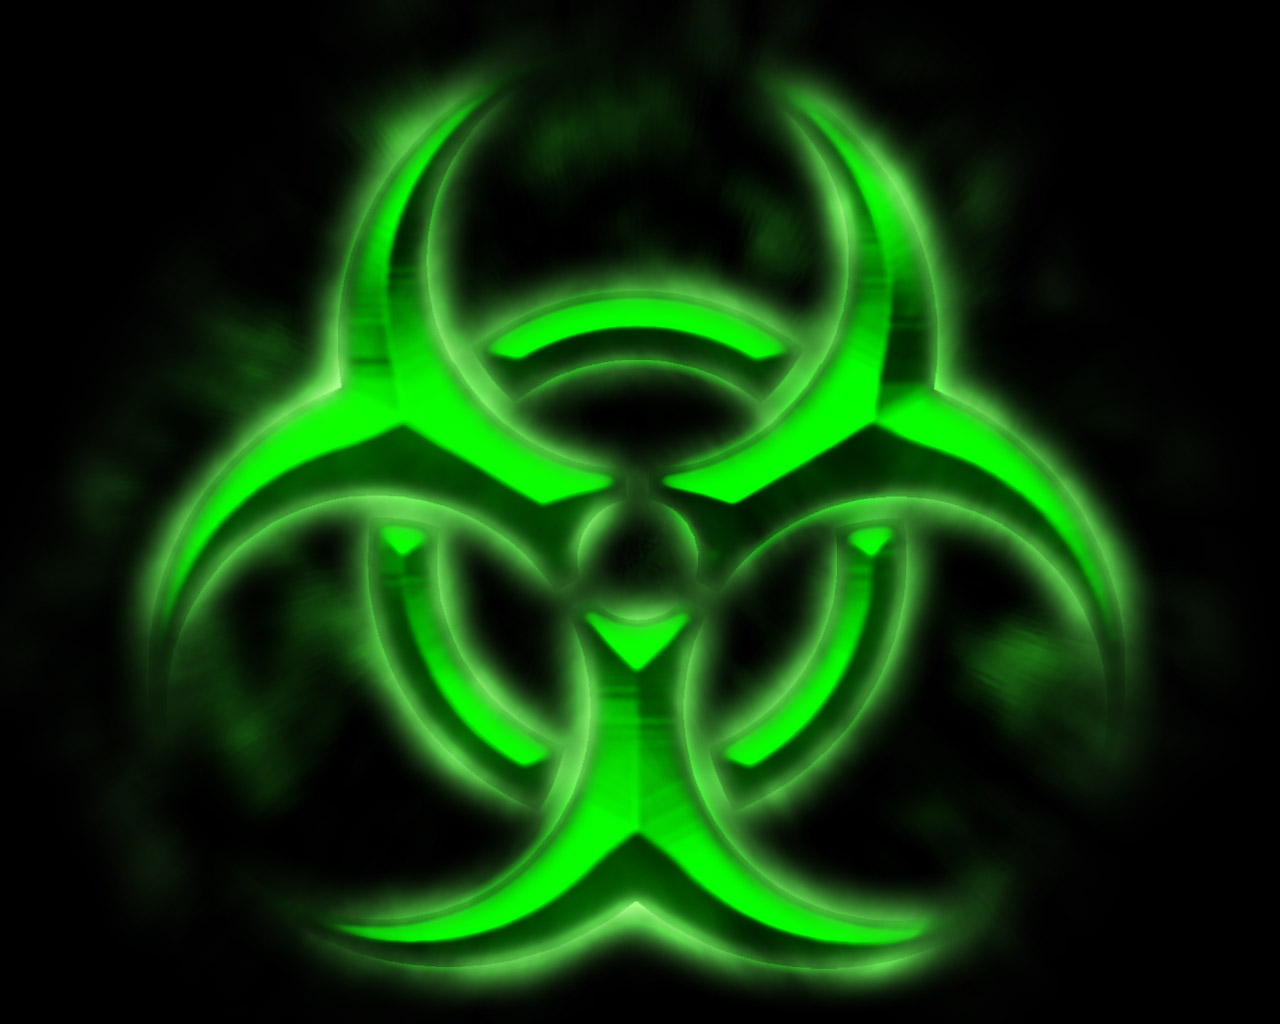 Green Biohazard Wallpaper - WallpaperSafari